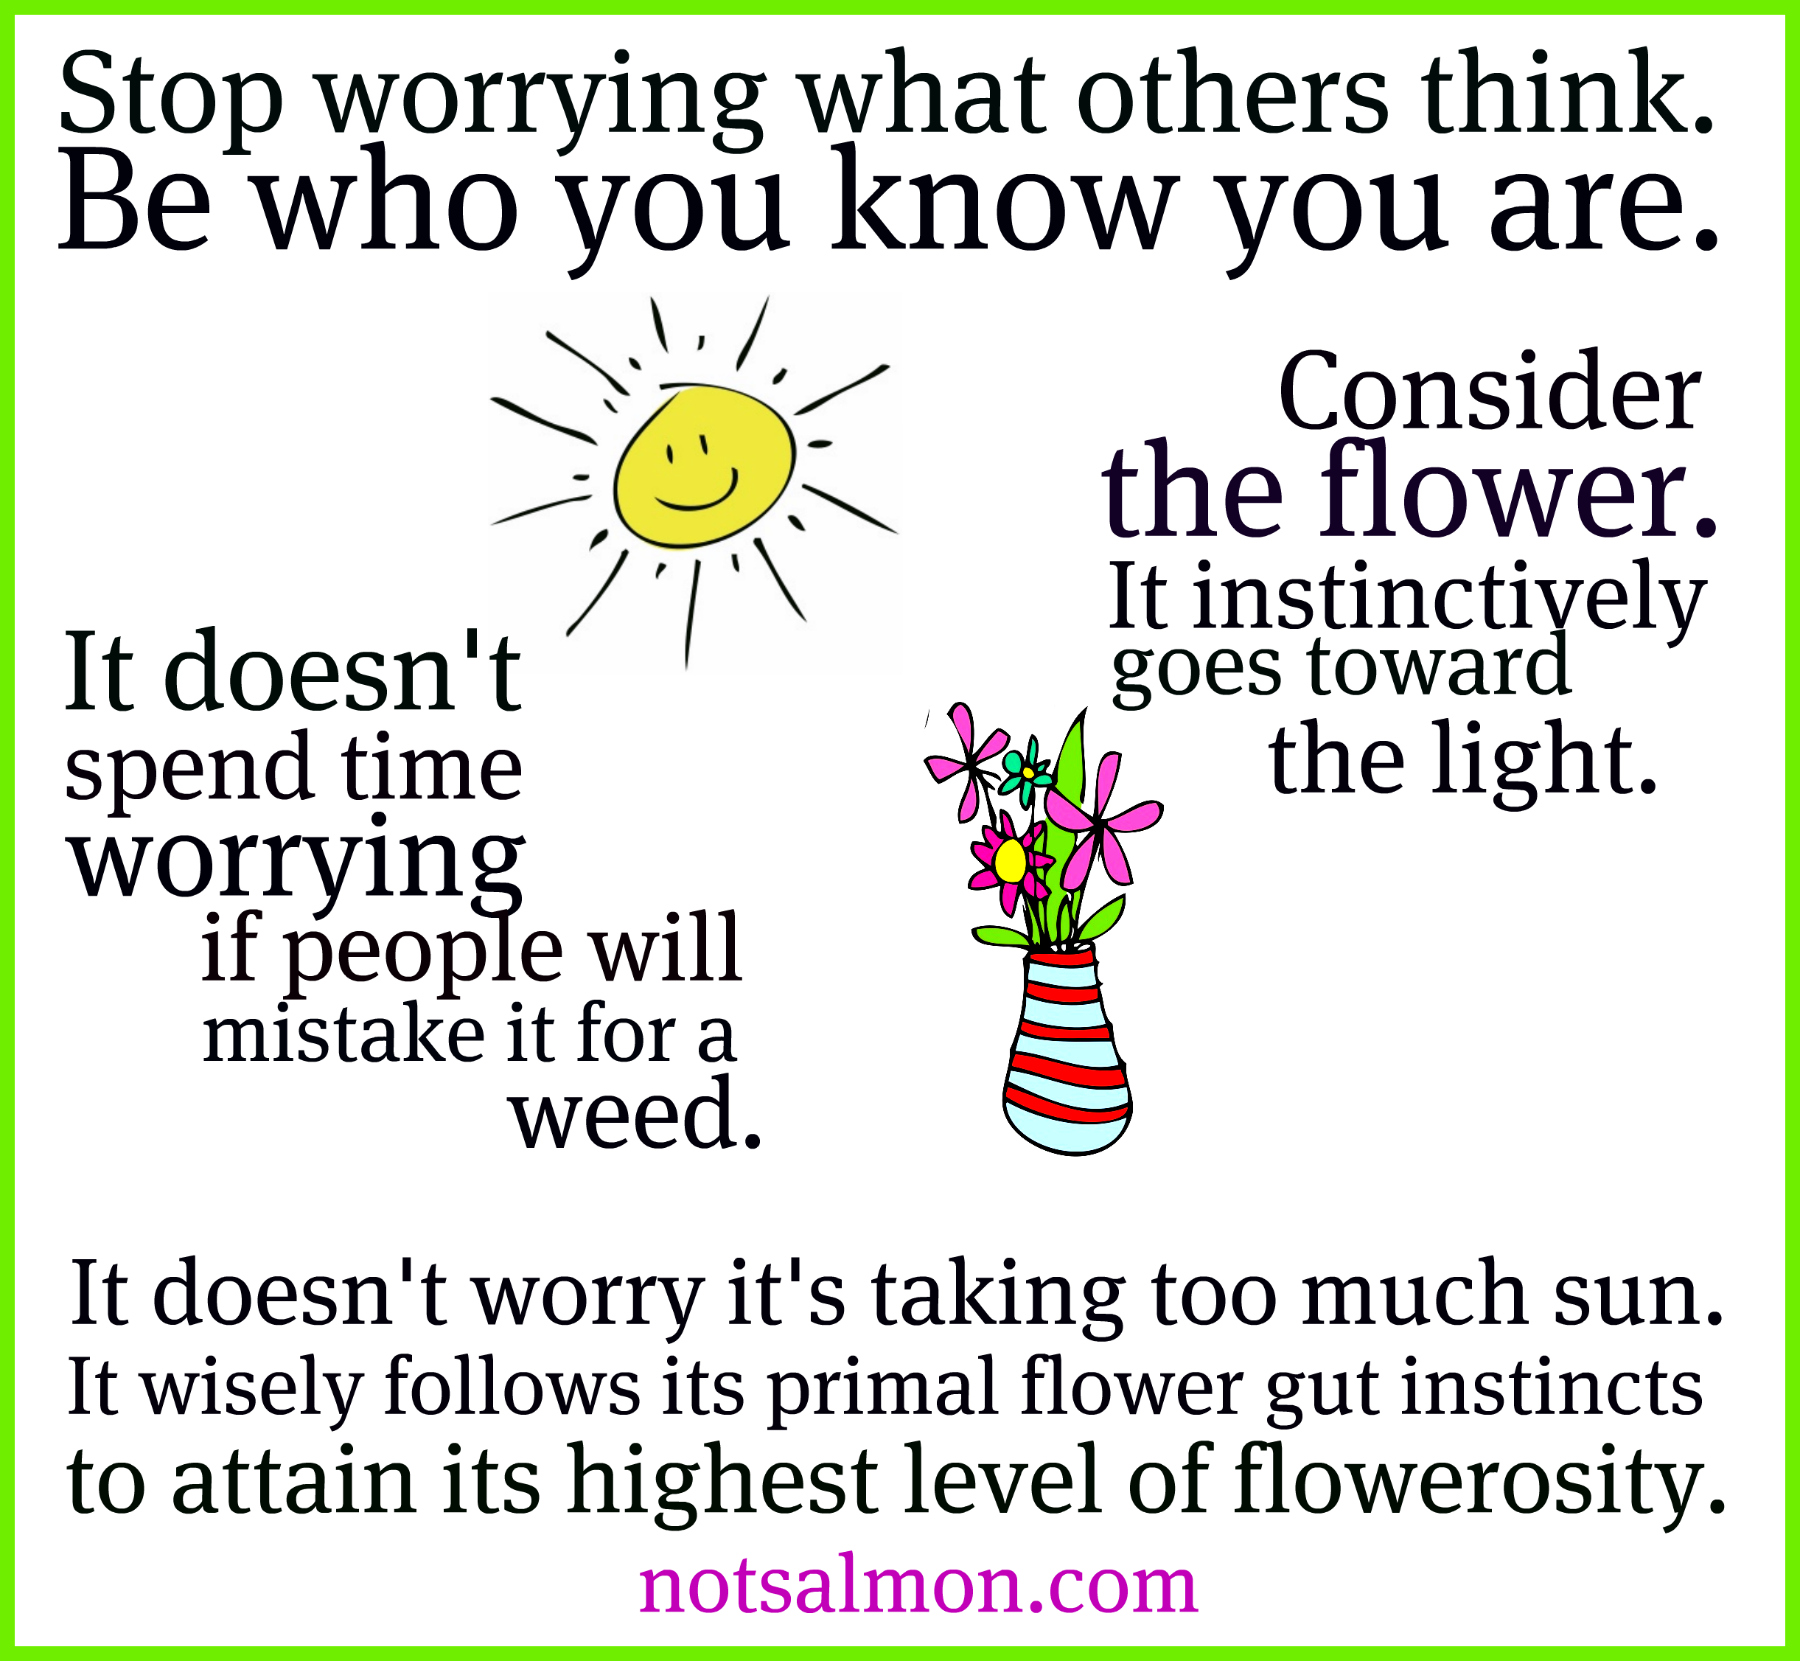 Stop worrying what others think...